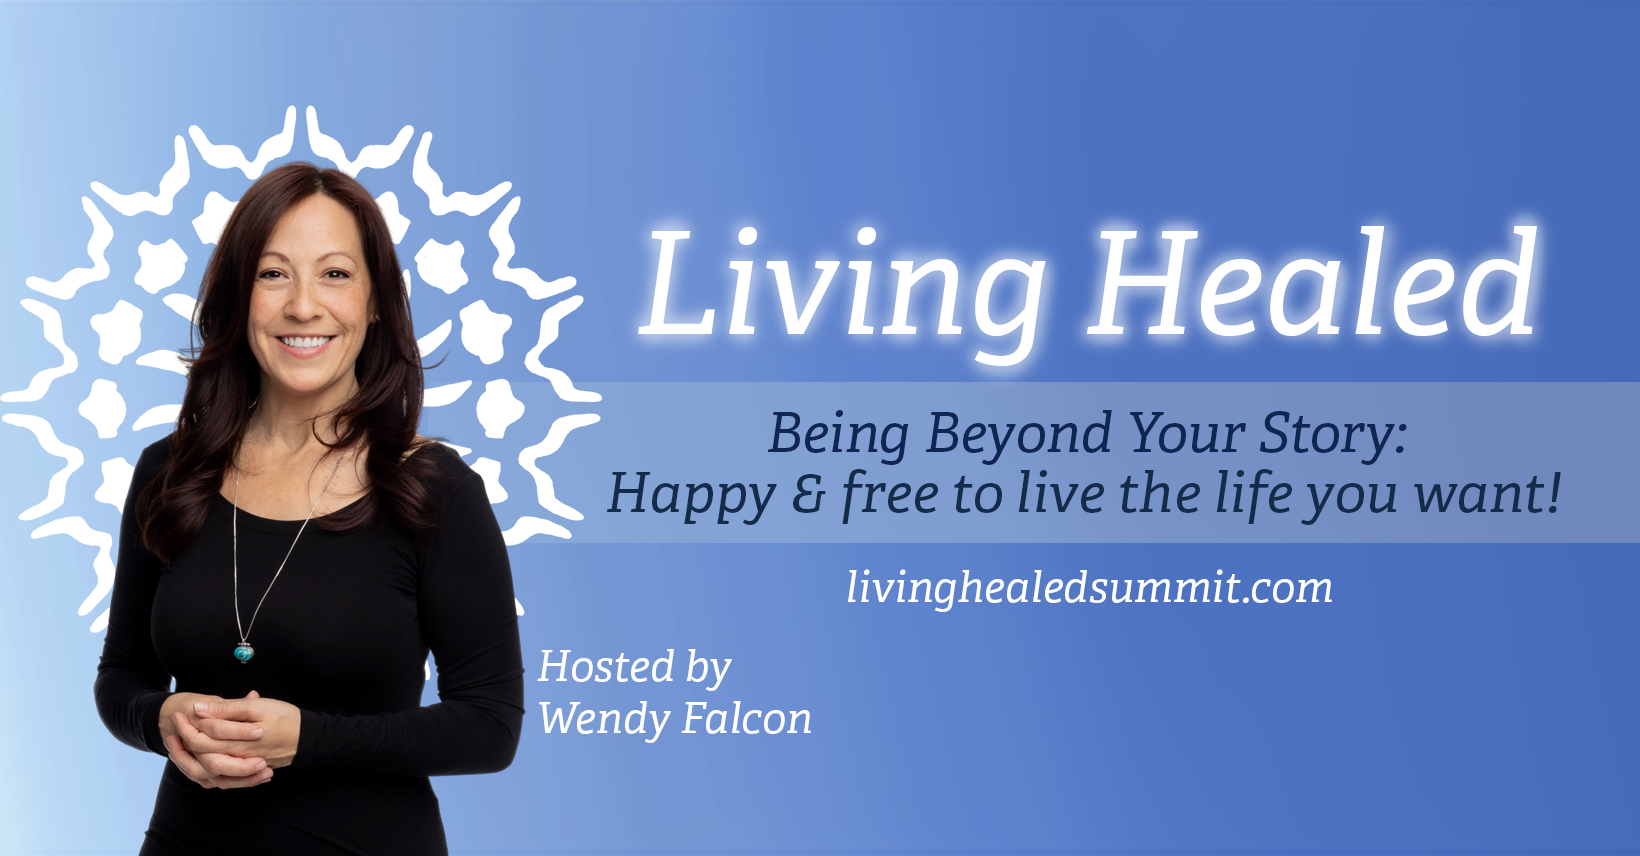 Living Healed: Being beyond your story, happy and free to live the life you want.